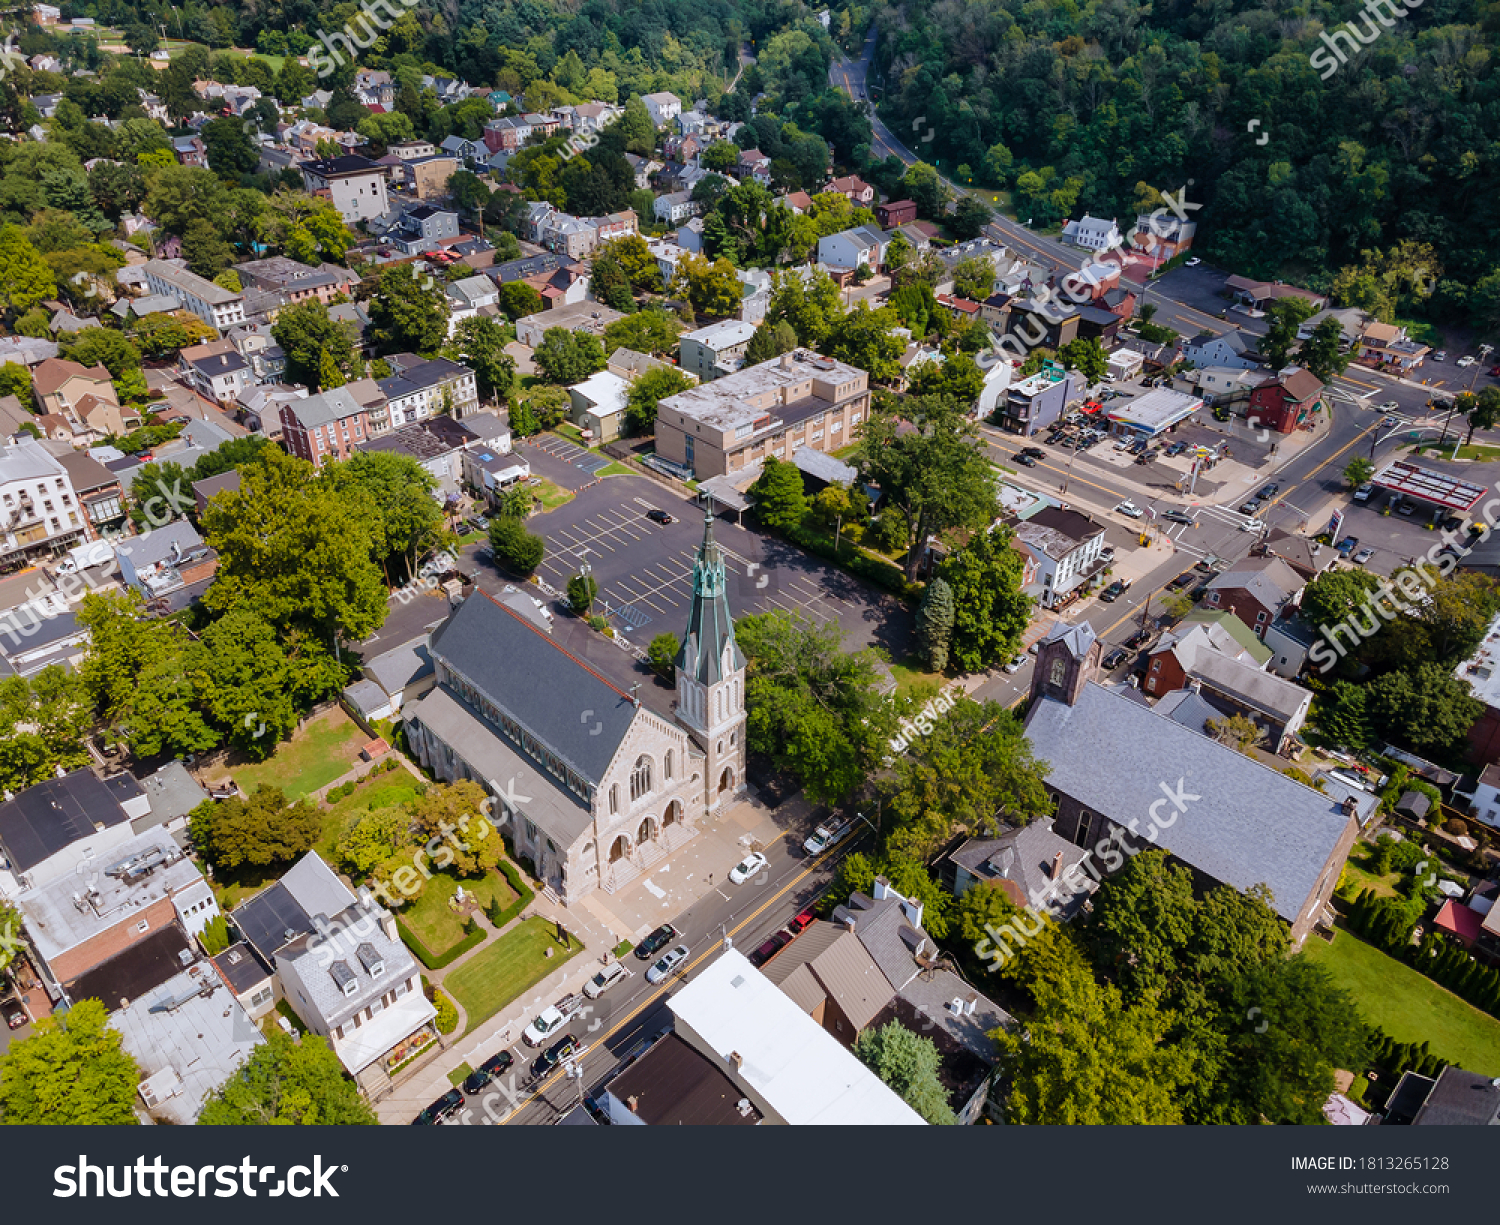 Scenic seasonal landscape from above aerial view of a small town countryside of Lambertville New Jersey USA in the historic city New Hope Pennsylvania US. #1813265128